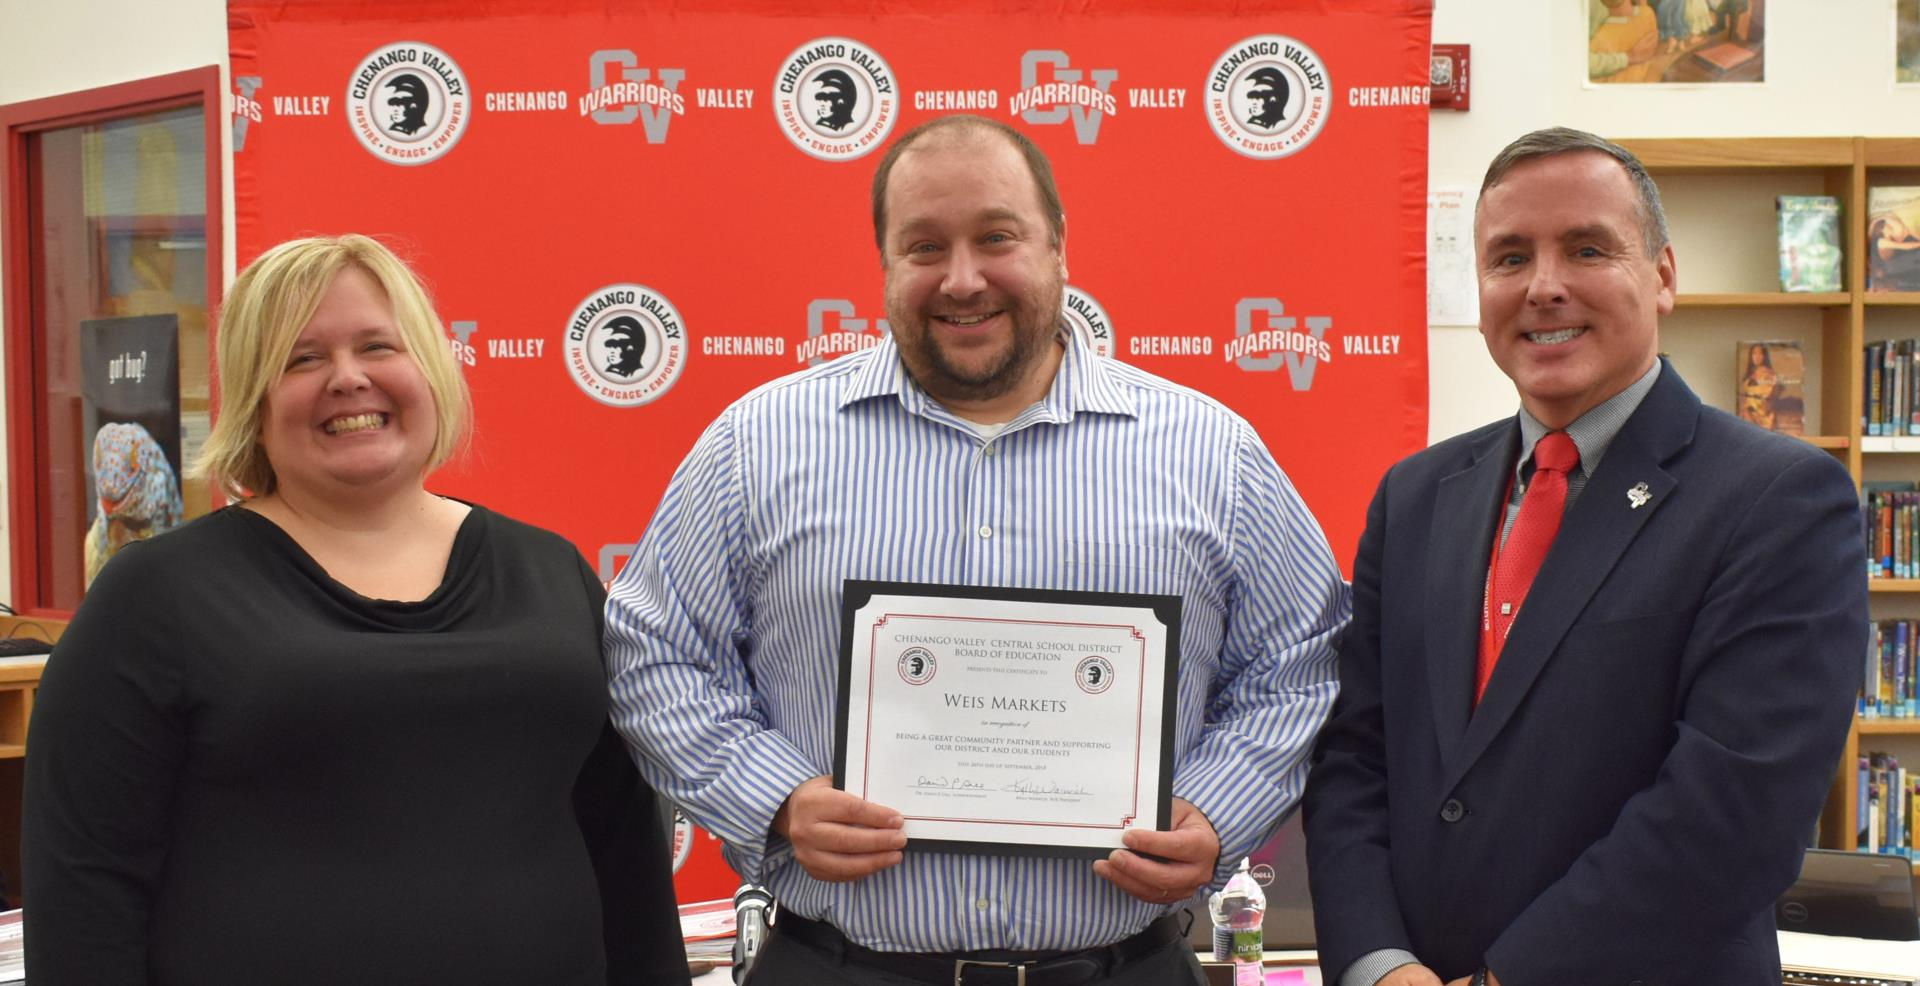 Weis Markets recognized